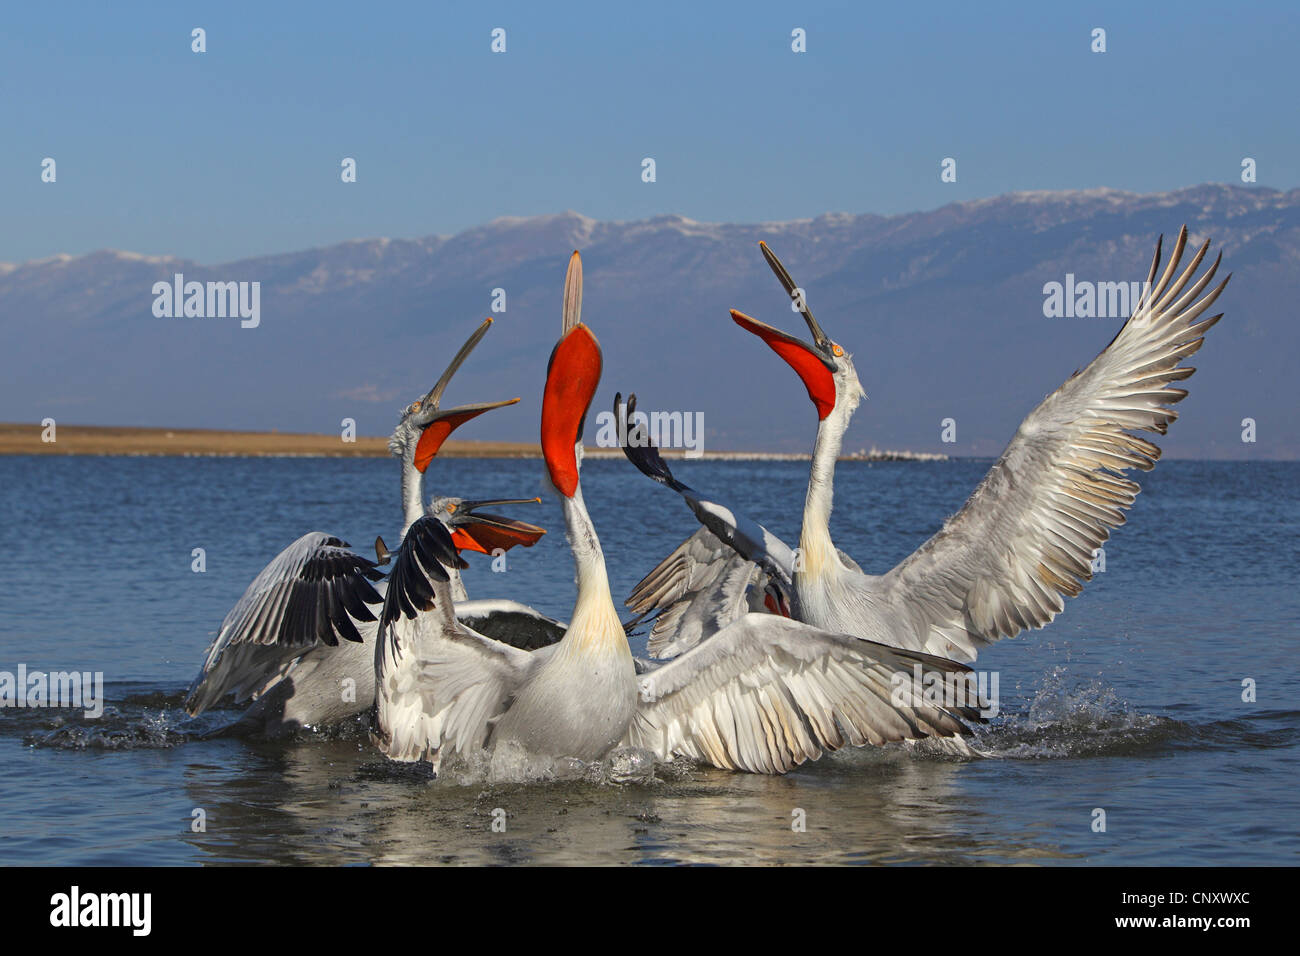 Dalmatian pelican (Pelecanus crispus), some birds fighting for food - Stock Image